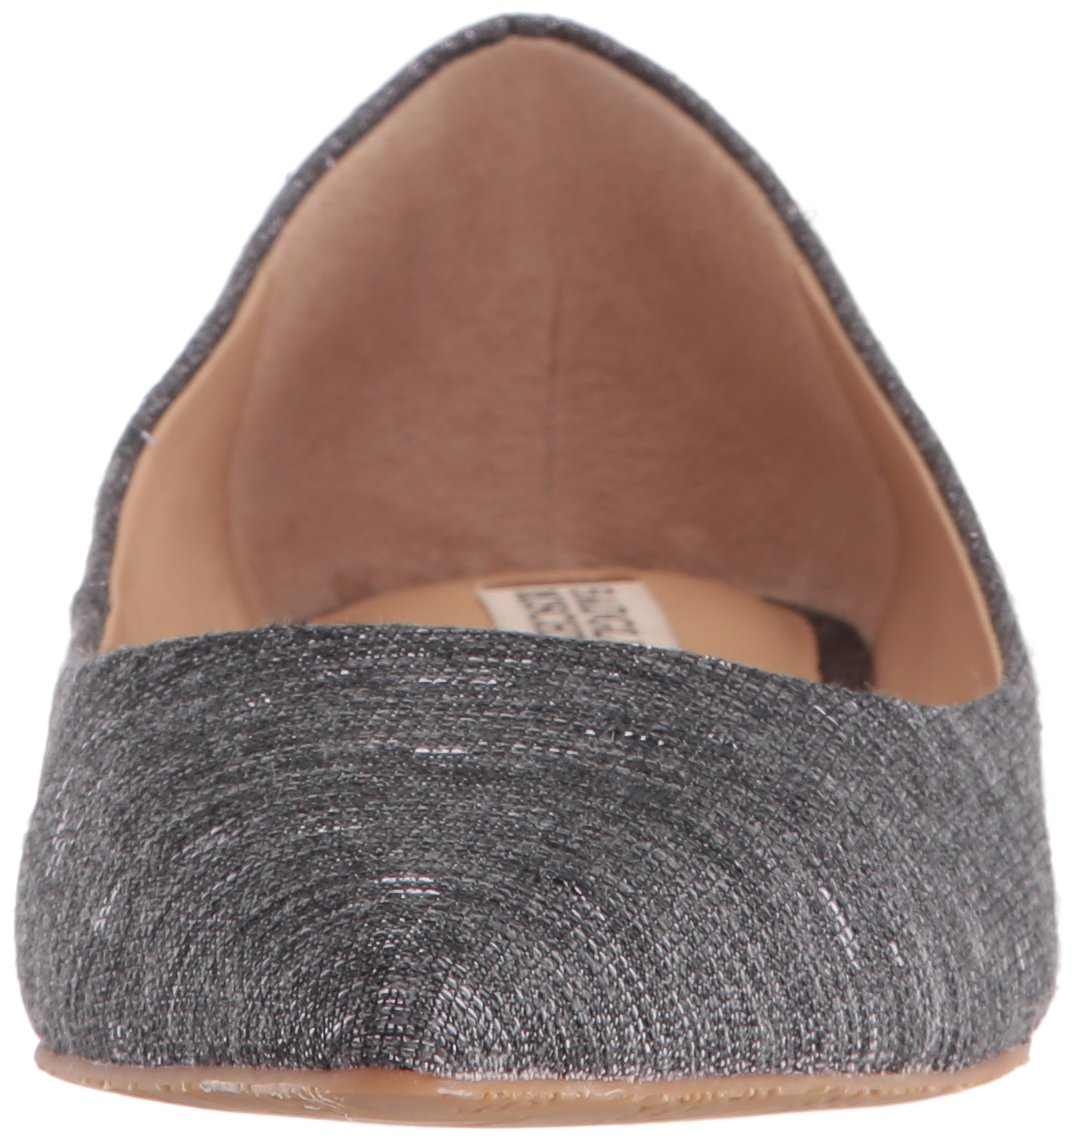 Badgley Mischka Women's Guardian Pointed Toe Flat B01LXIGKOI 8 B(M) US|Pewter